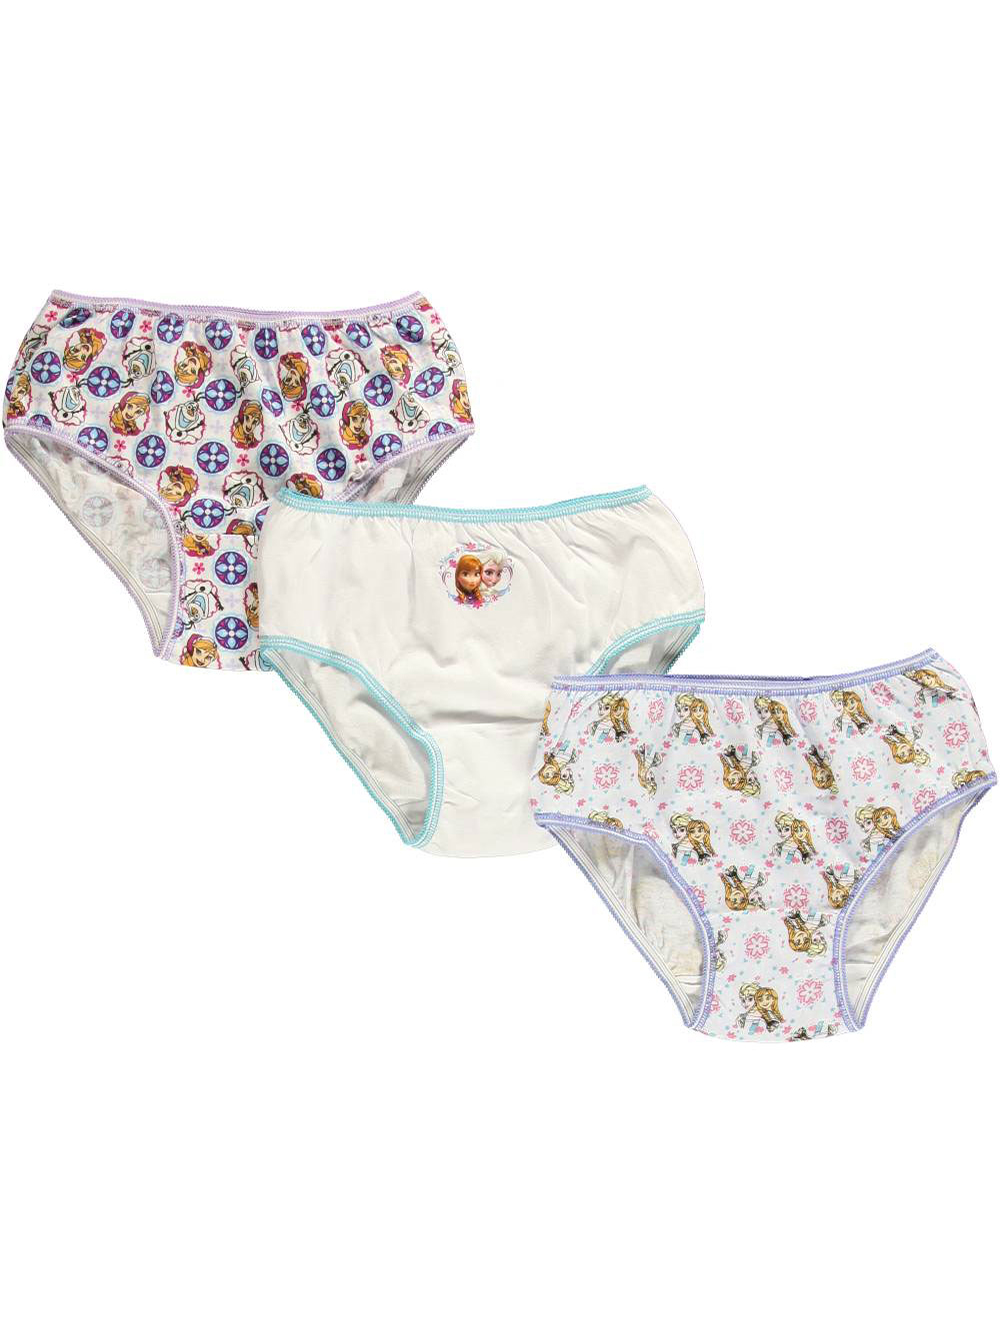 Girls Purple and Multicolor Underwear